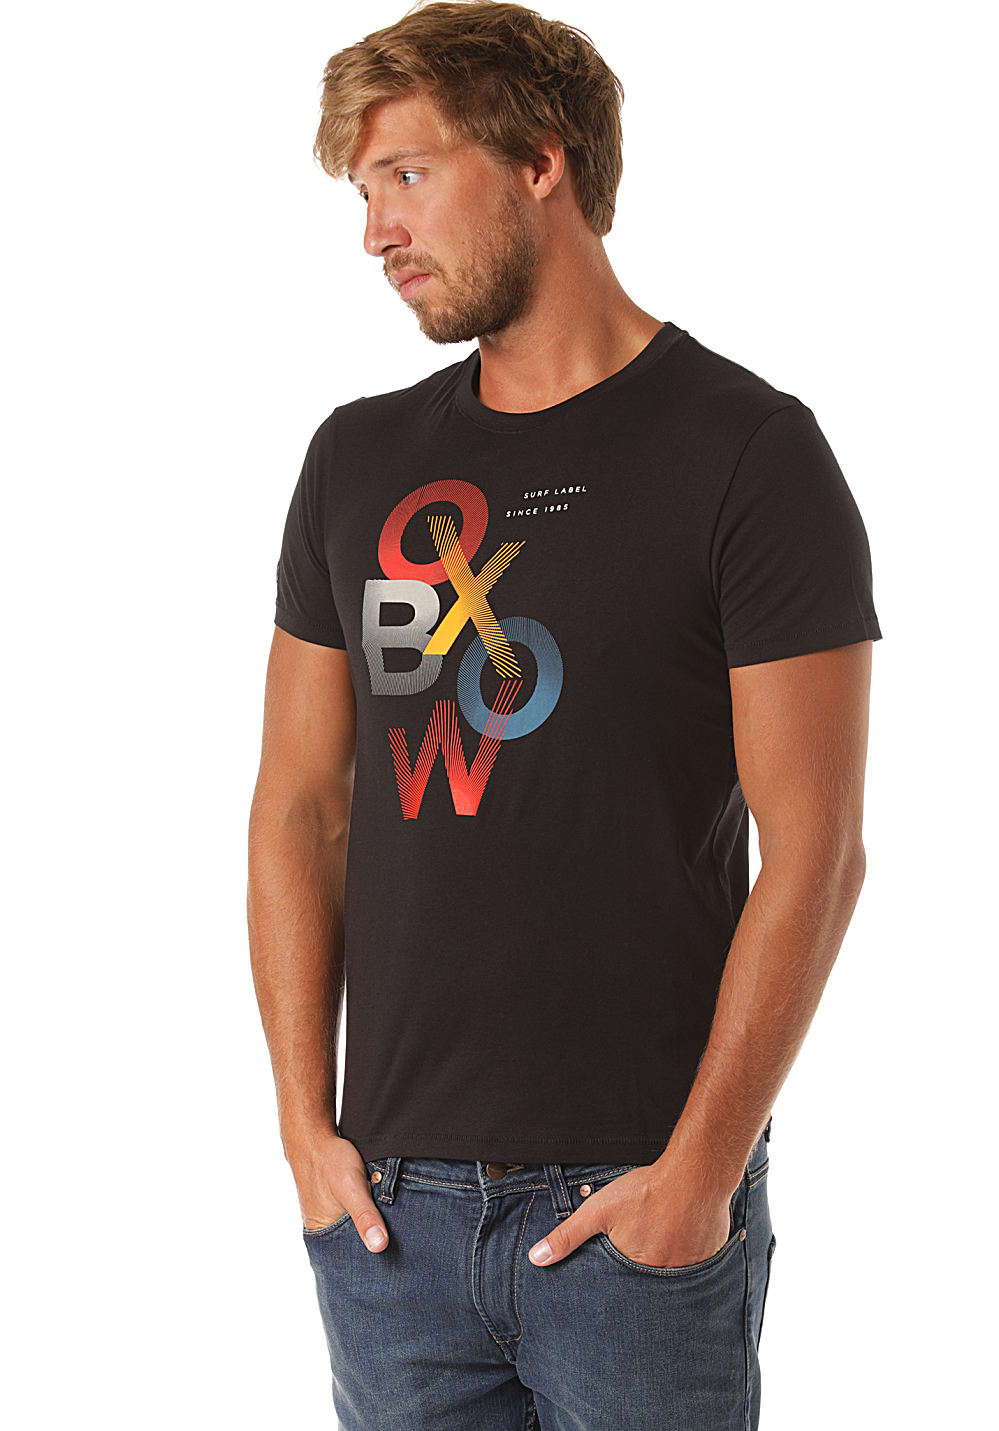 T-Shirt Homme Oxbow Tsuby